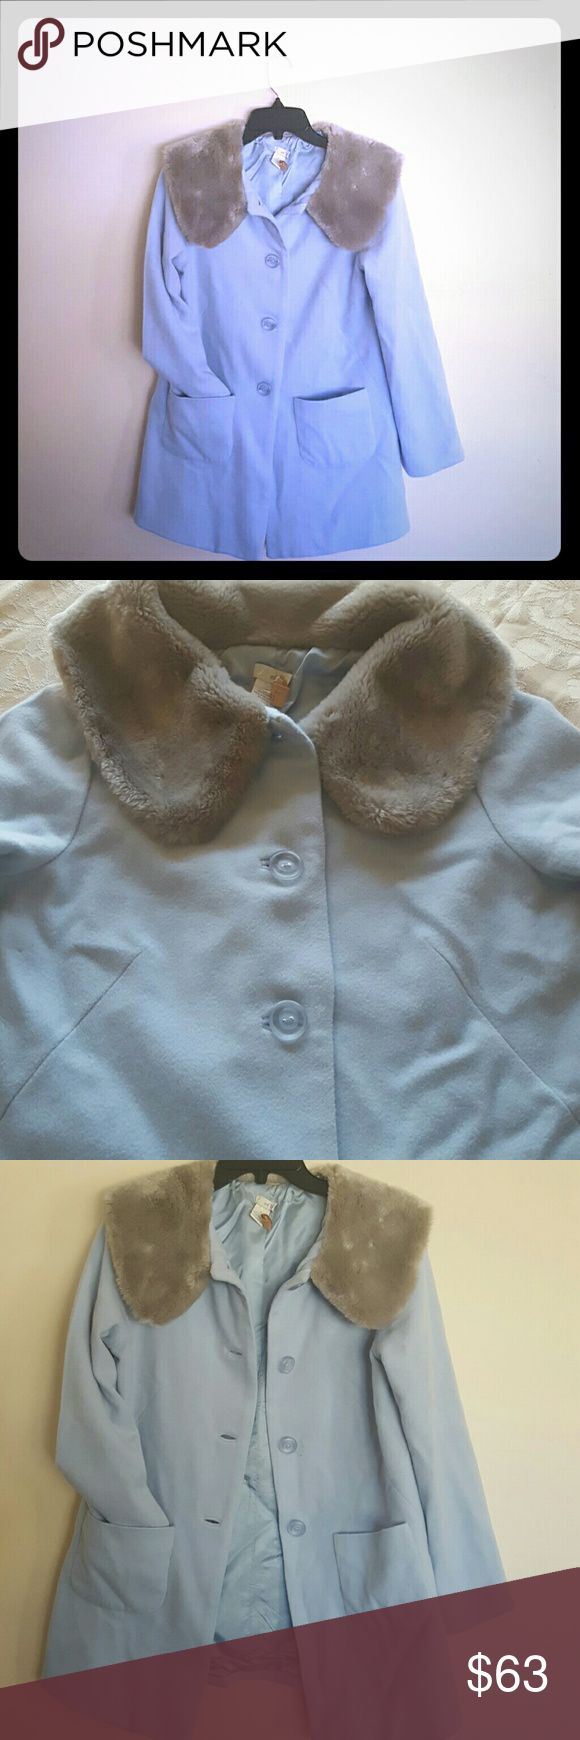 """Anthro coat For sale  cutest Anthropologie coat.  This coat is baby blue with soft gray collar around neck to keep you warm. Almost excellent condition  ( small stain & smaller hole see las picture) Two retro style front pockets , no slit opening  Little flare at the bottom  Size 8 but fits more like small  Pit to pit approximately 36"""" Lenght 28 Waist 40 100% wool,  fully  lined Anthropologie Jackets & Coats Pea Coats"""